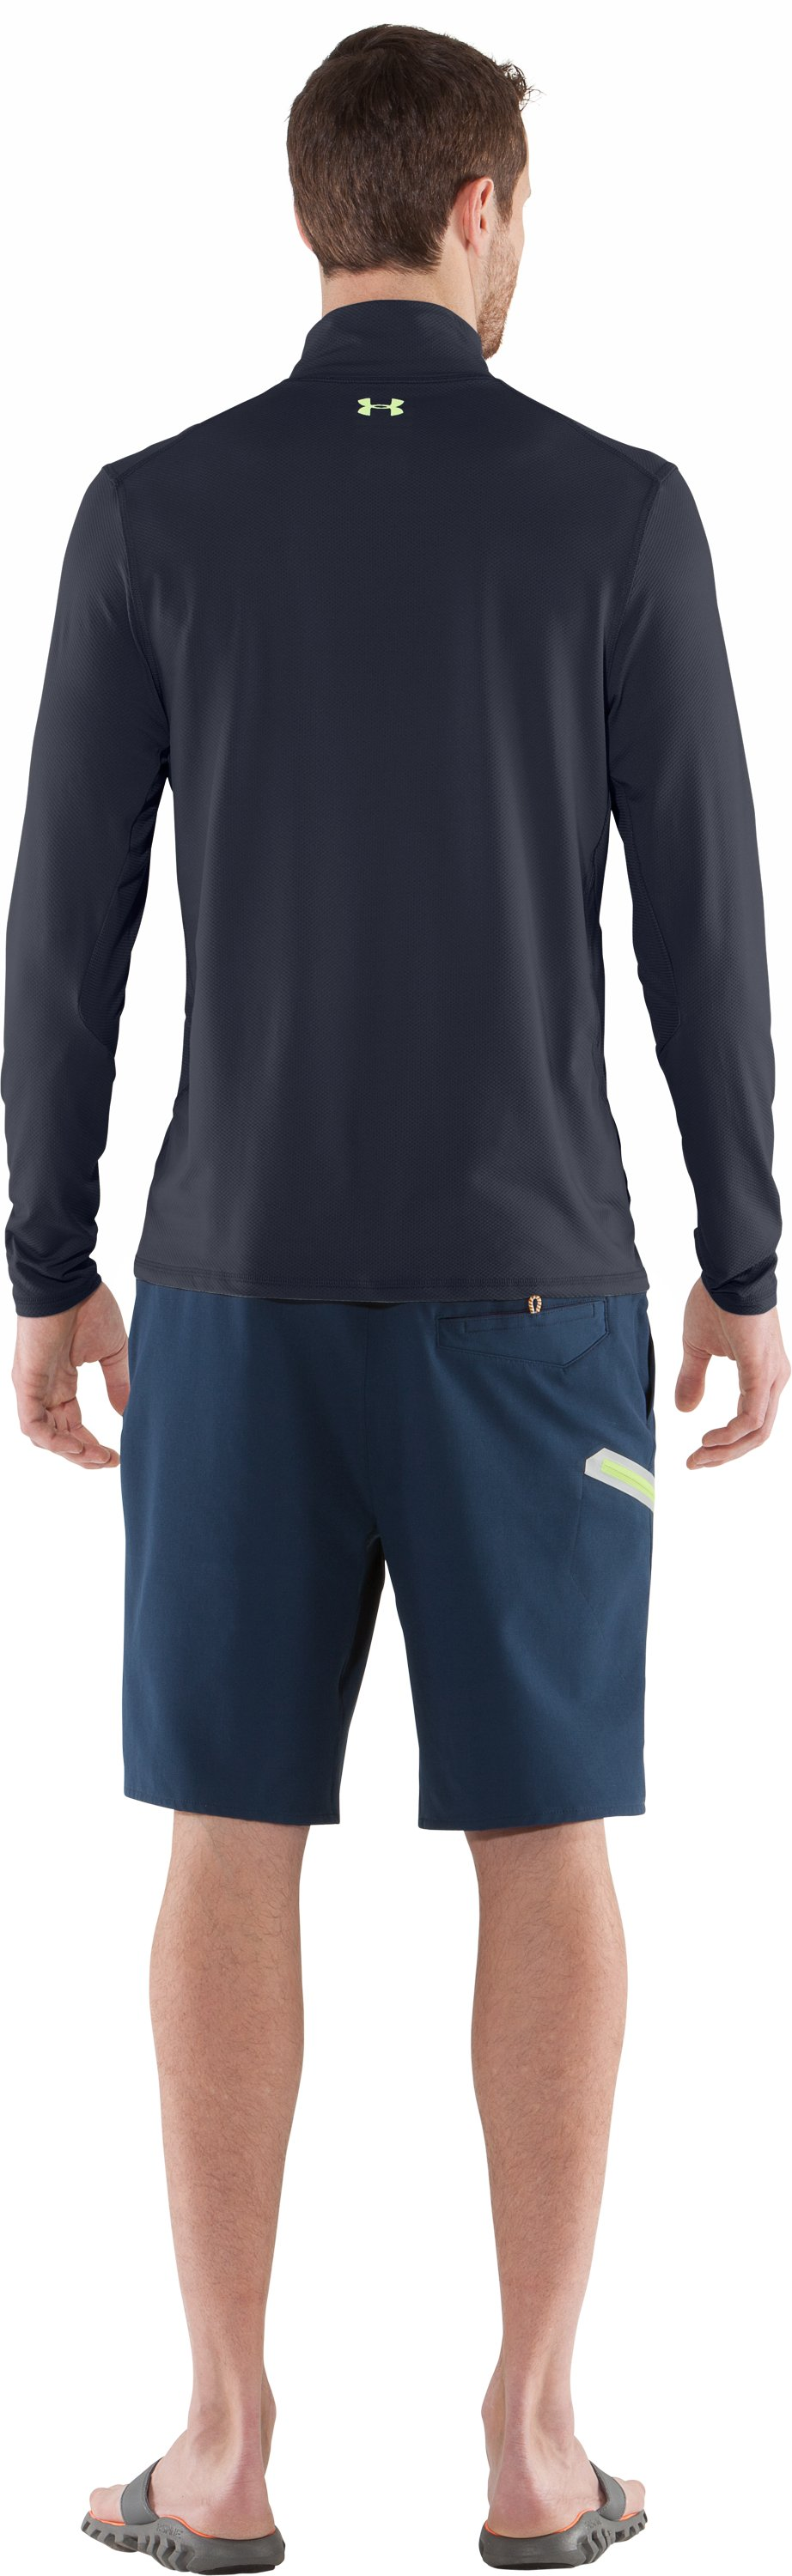 Men's coldblack® Abyss Knit Long Sleeve, DEEPWATER, Back